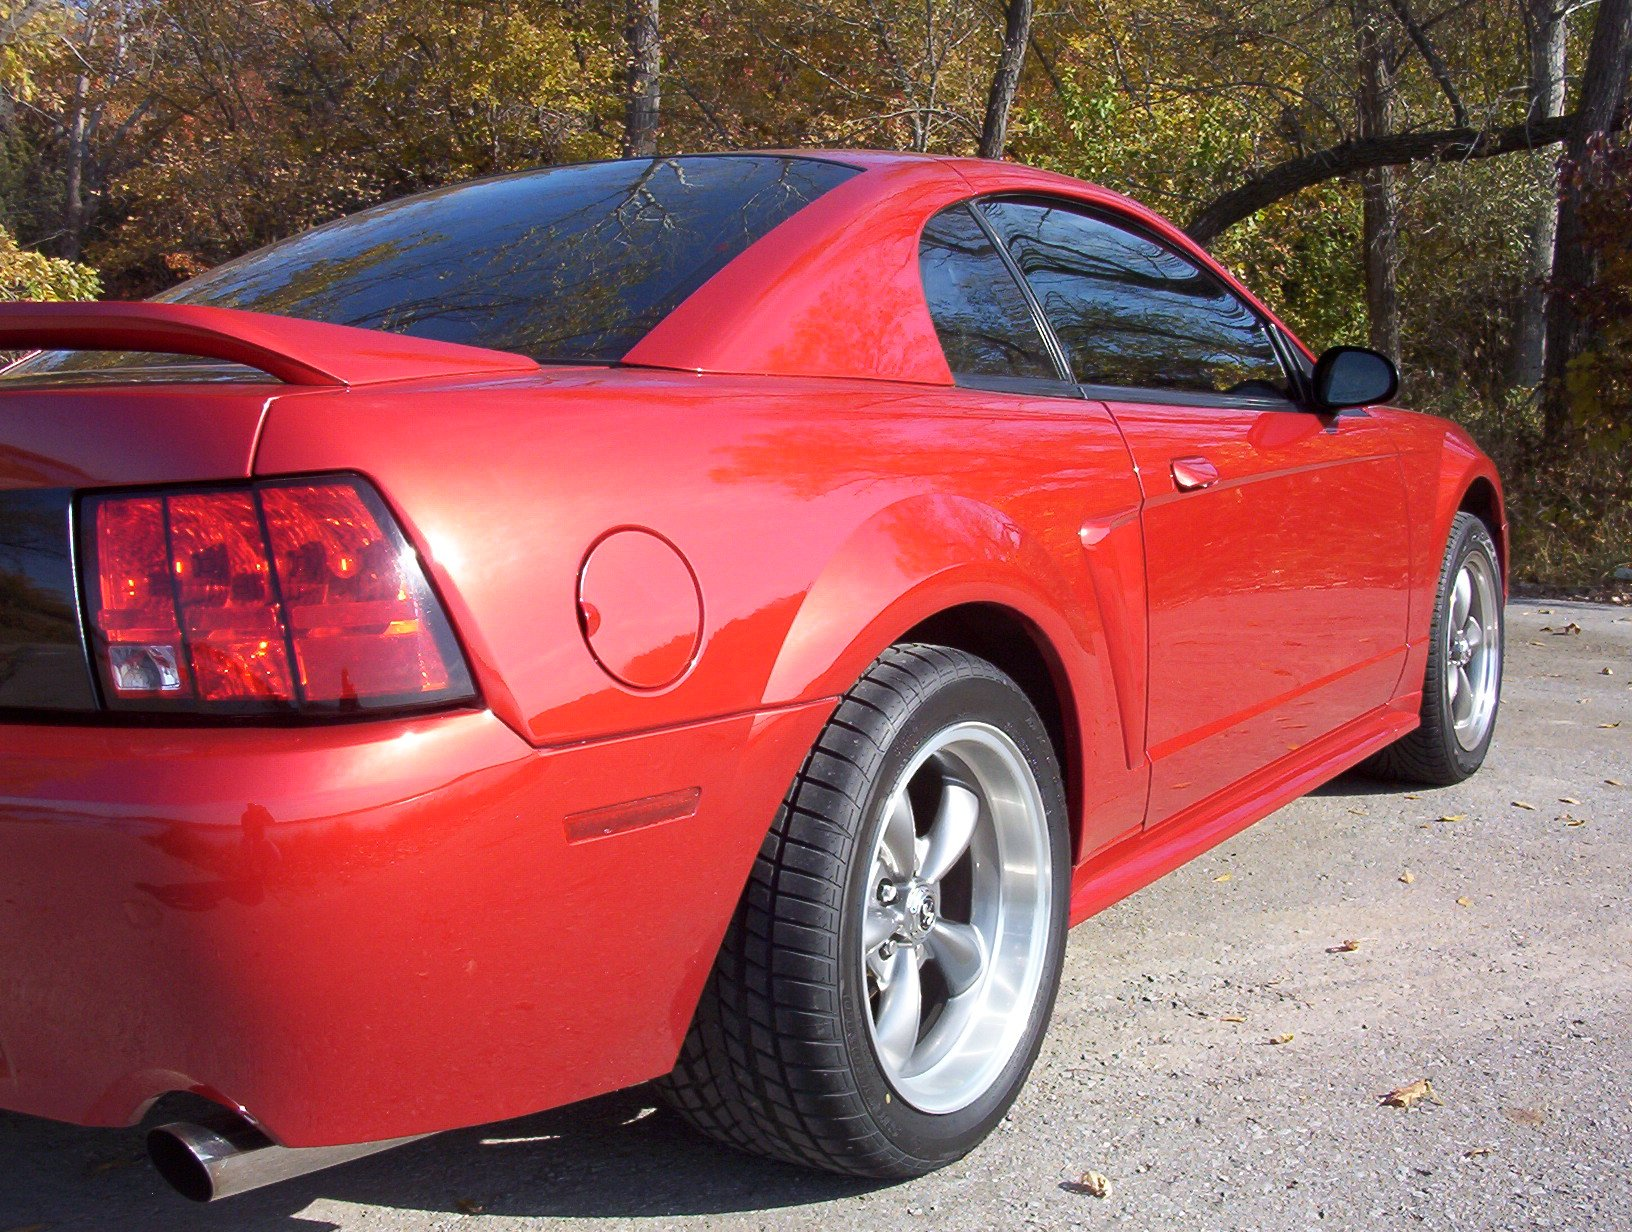 new member 1999 mustang gt pics ford mustang forum. Black Bedroom Furniture Sets. Home Design Ideas